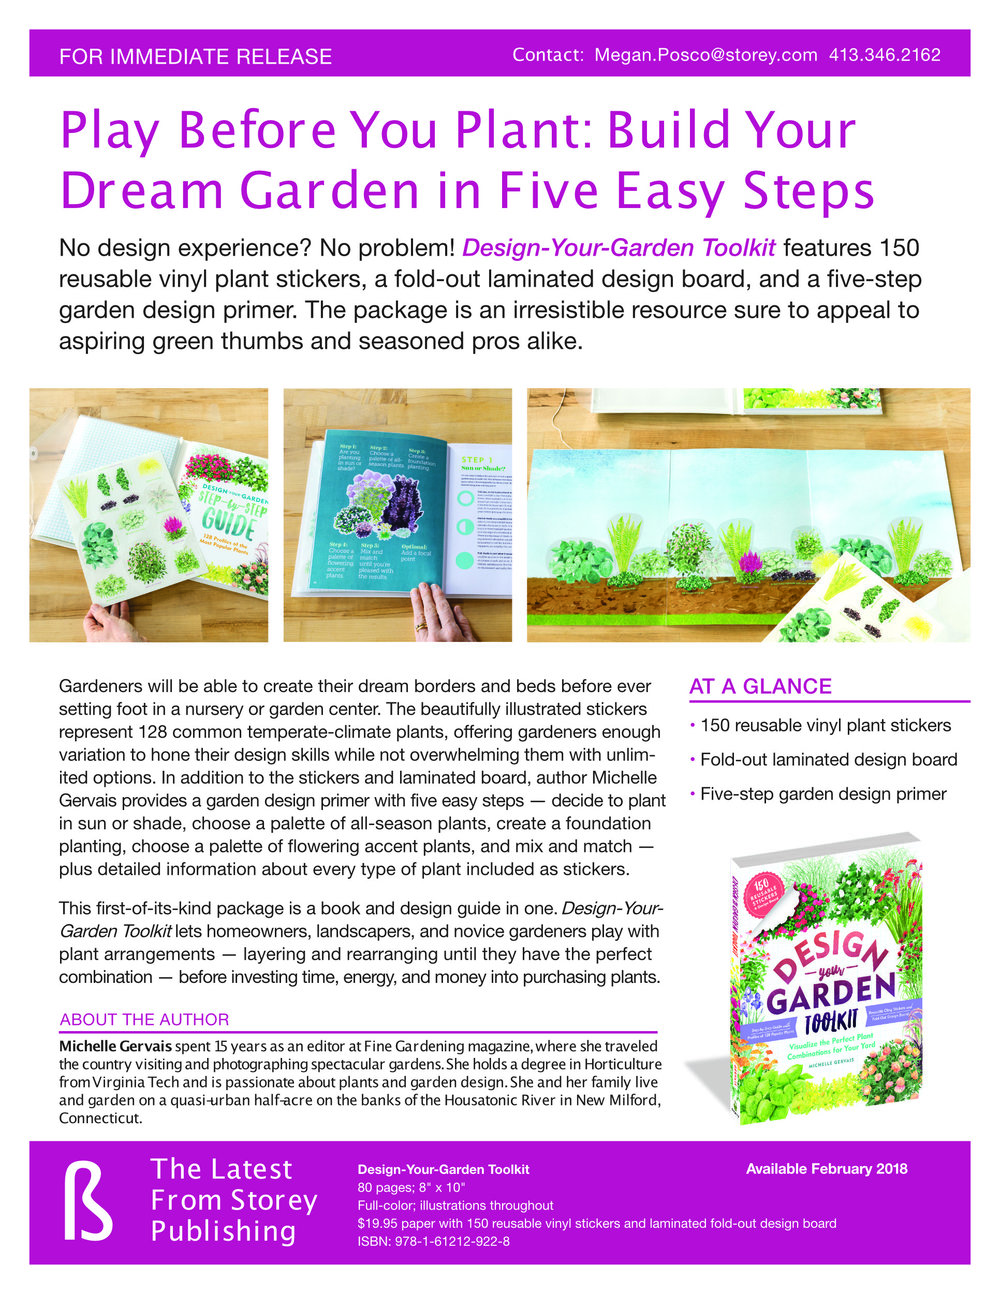 Design-Your-Garden-Press-Release-thumbnail.jpg